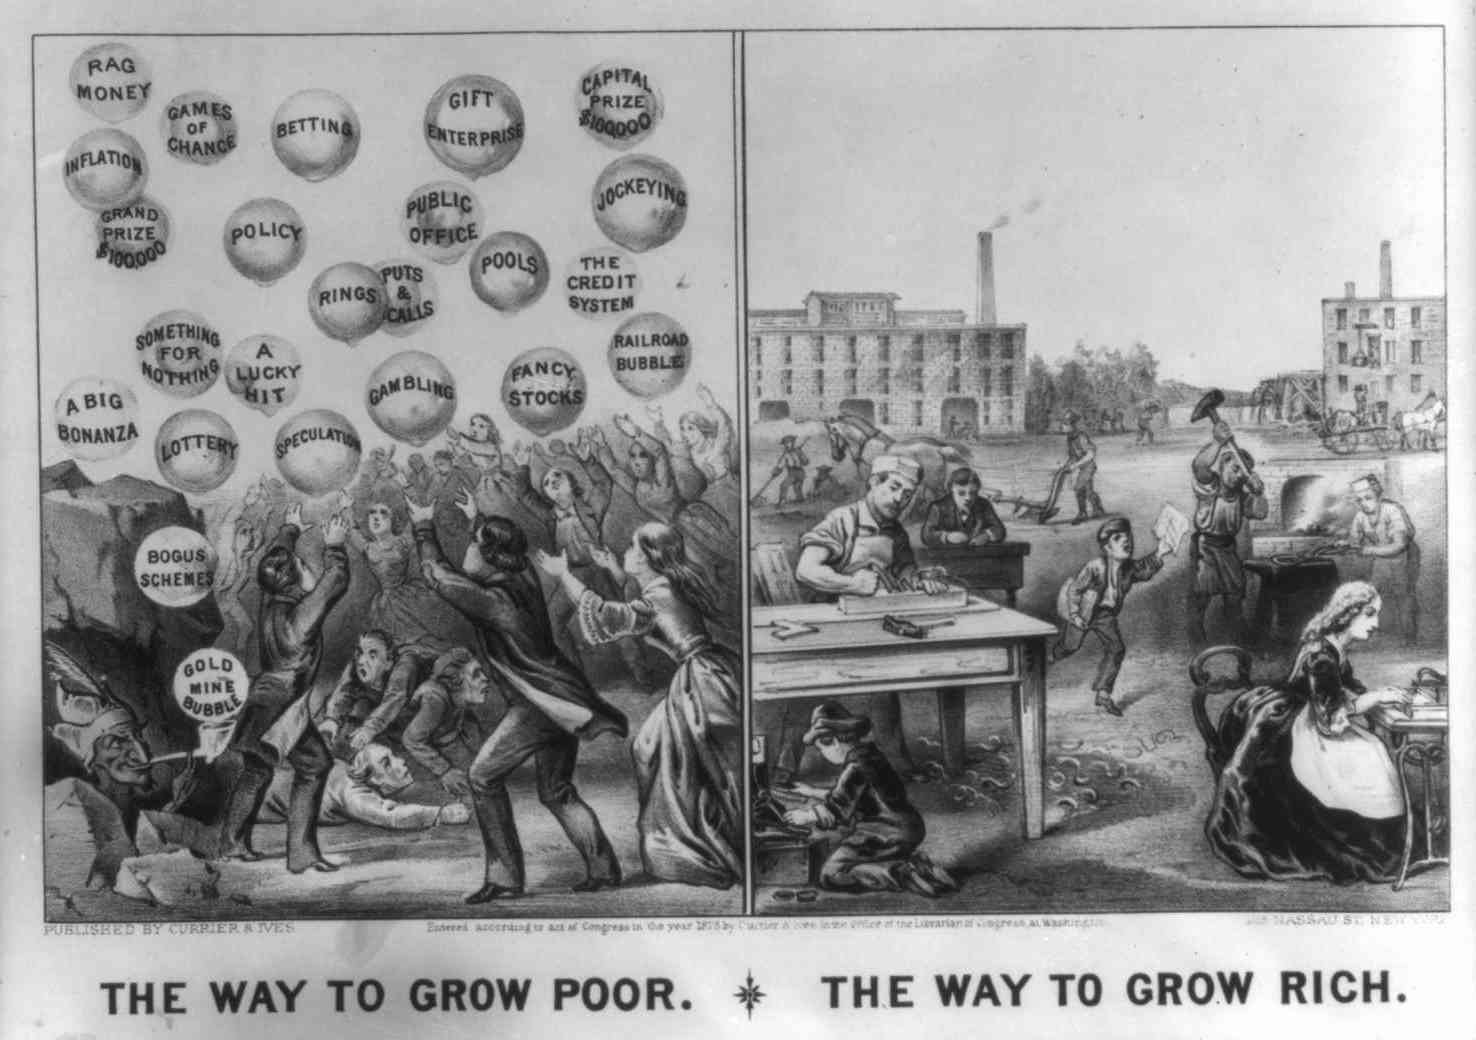 The Way to Grow Poor ...